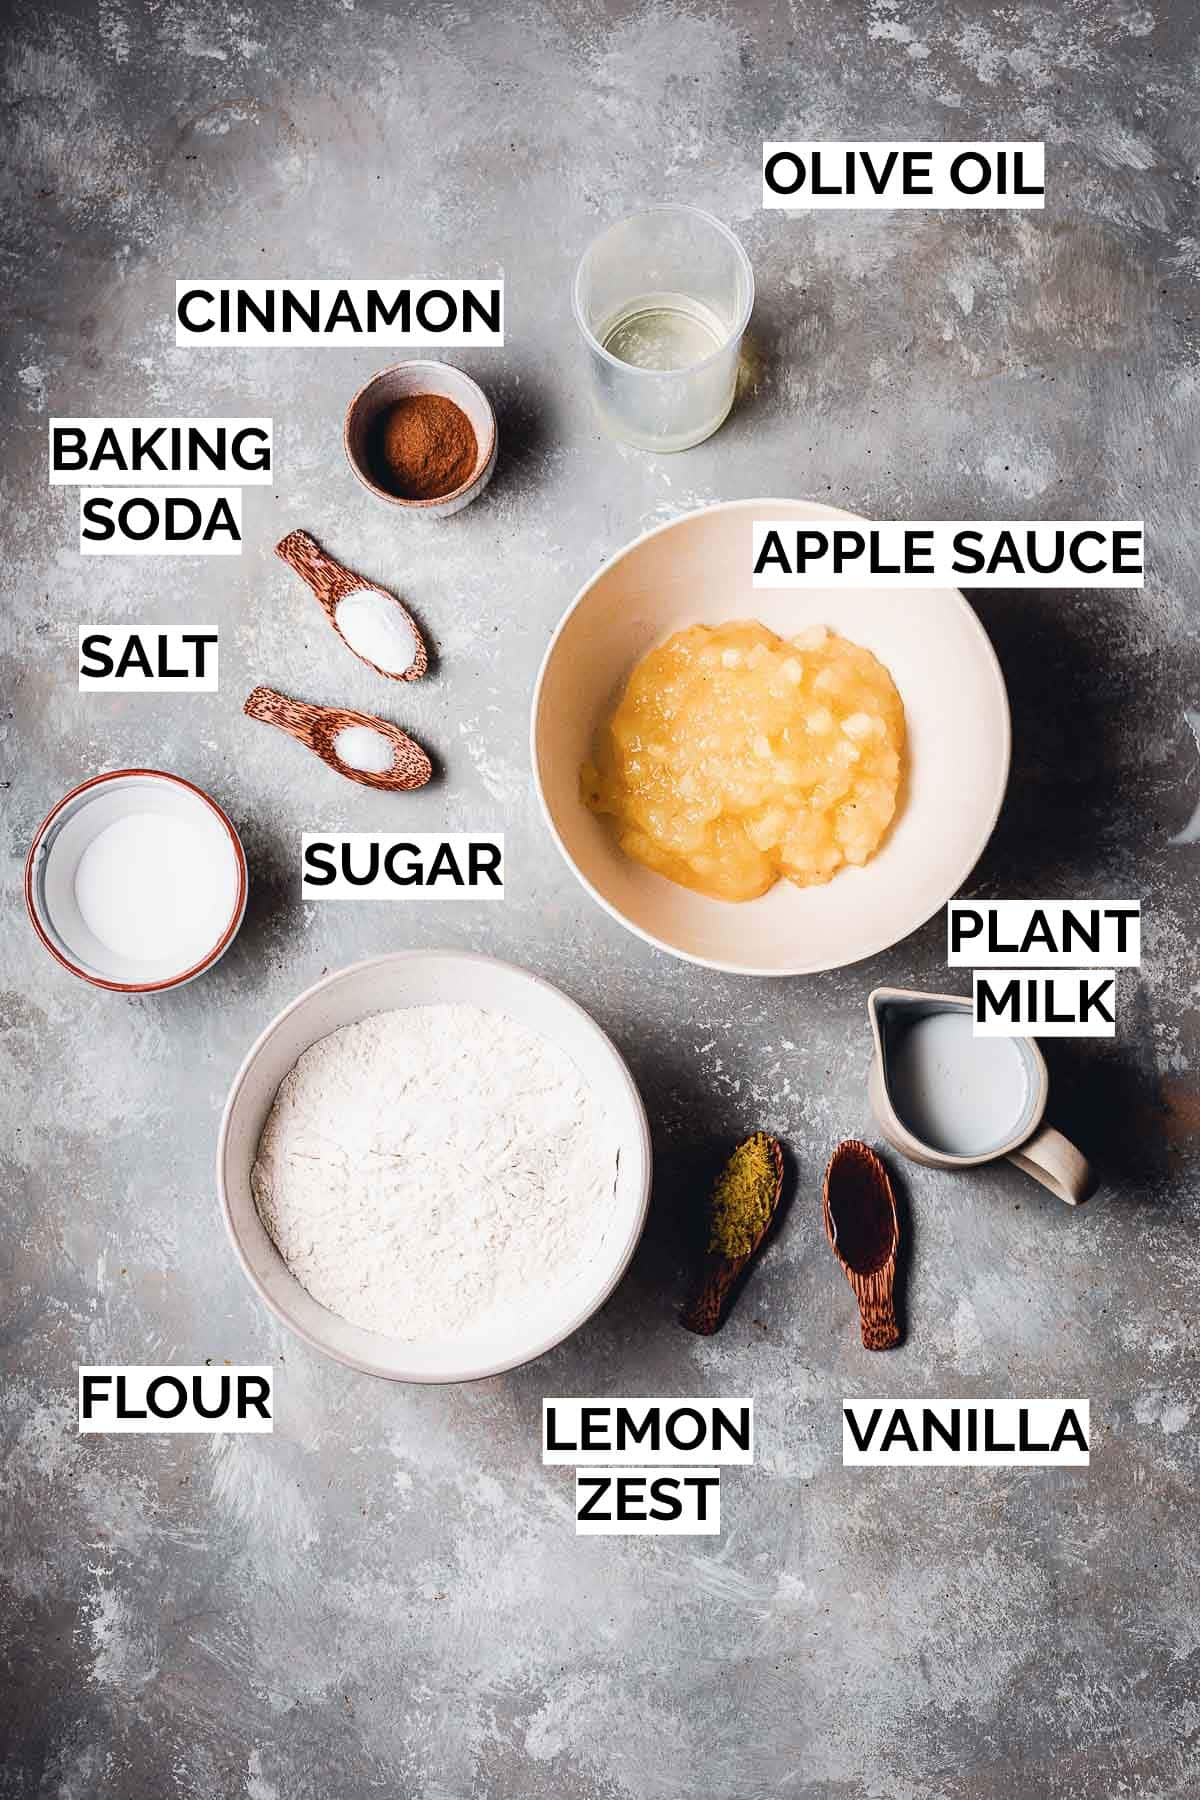 All ingredients needed to bake vegan apple sauce cake laid on a flat background.